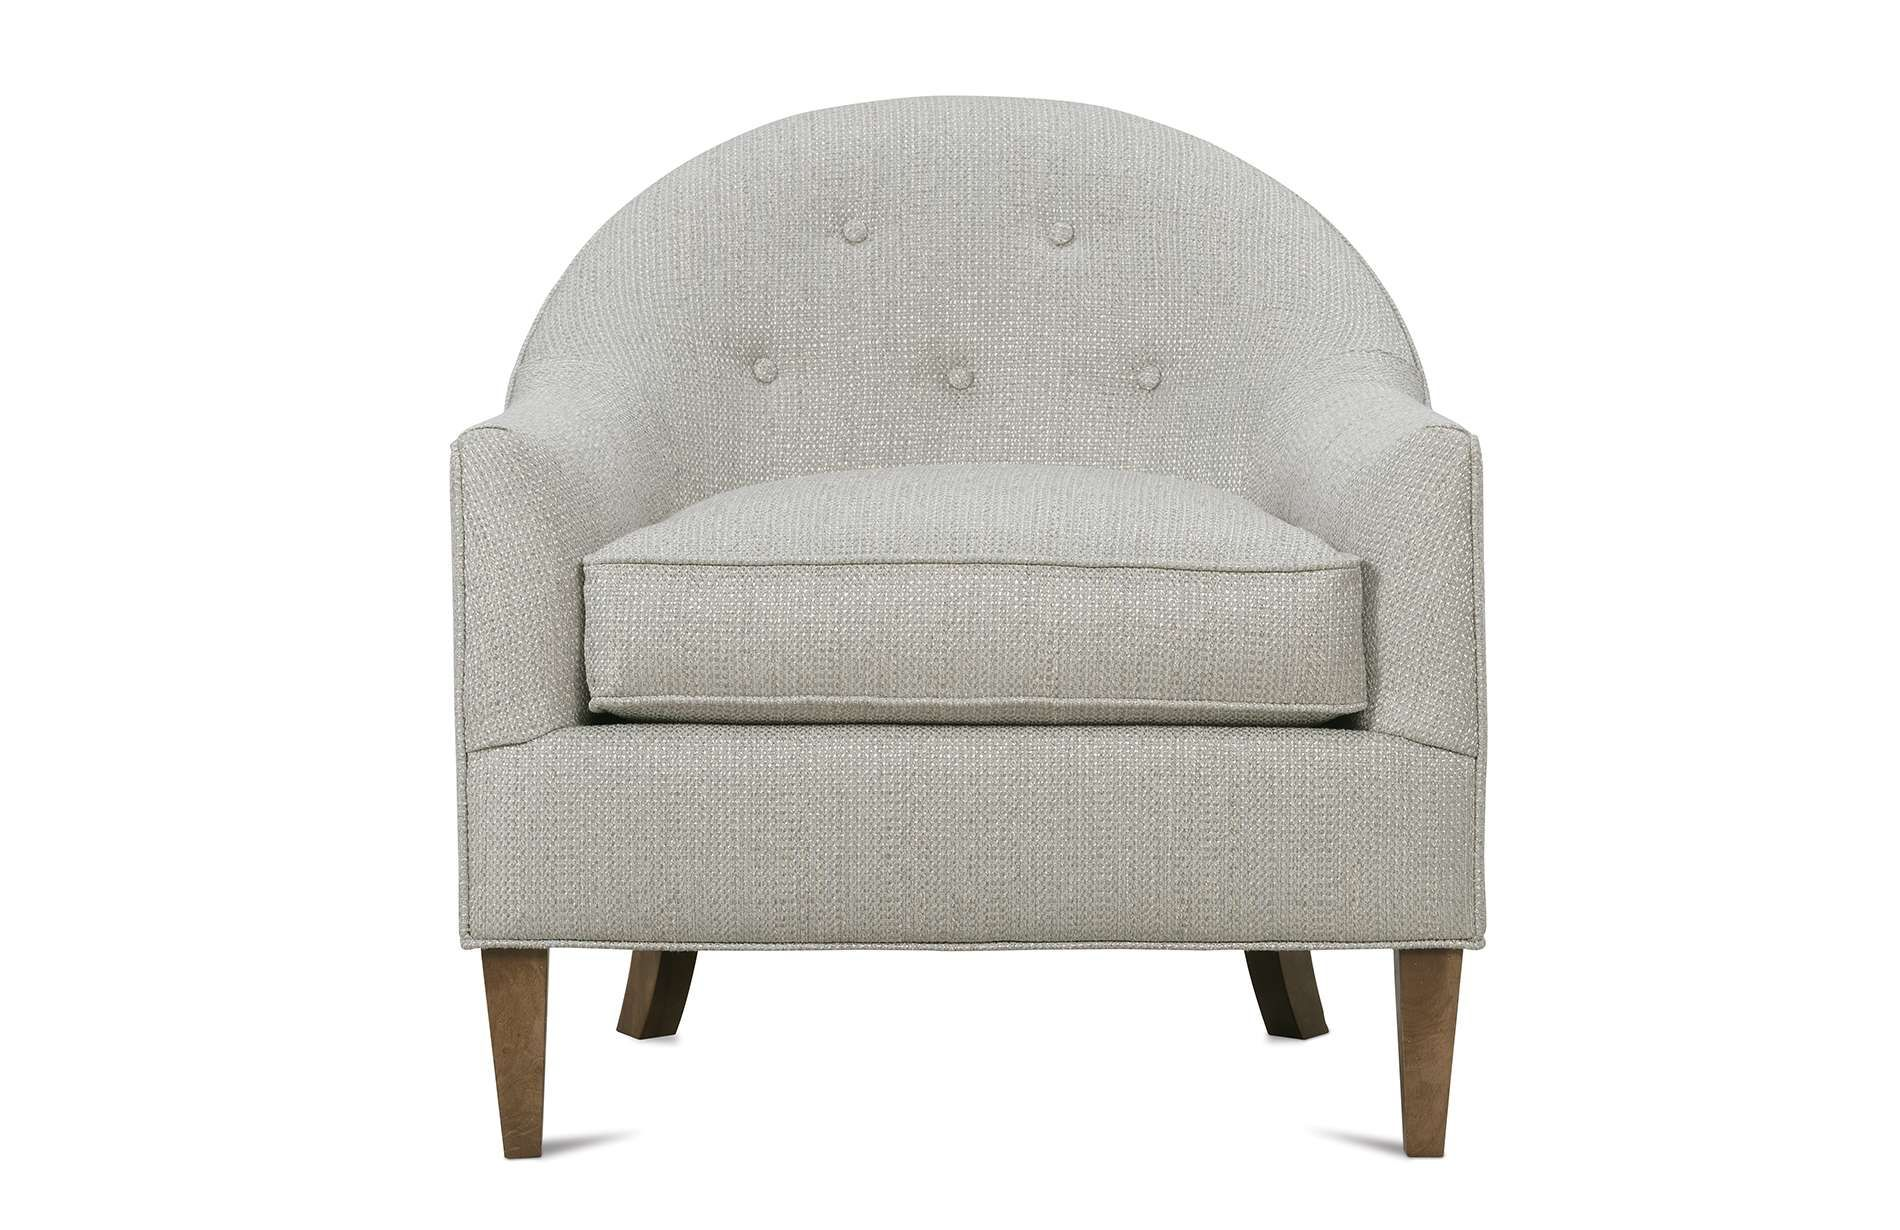 Fantastic Phoebe Chair Rowe Furniture Hallie Ottoman Table Caraccident5 Cool Chair Designs And Ideas Caraccident5Info